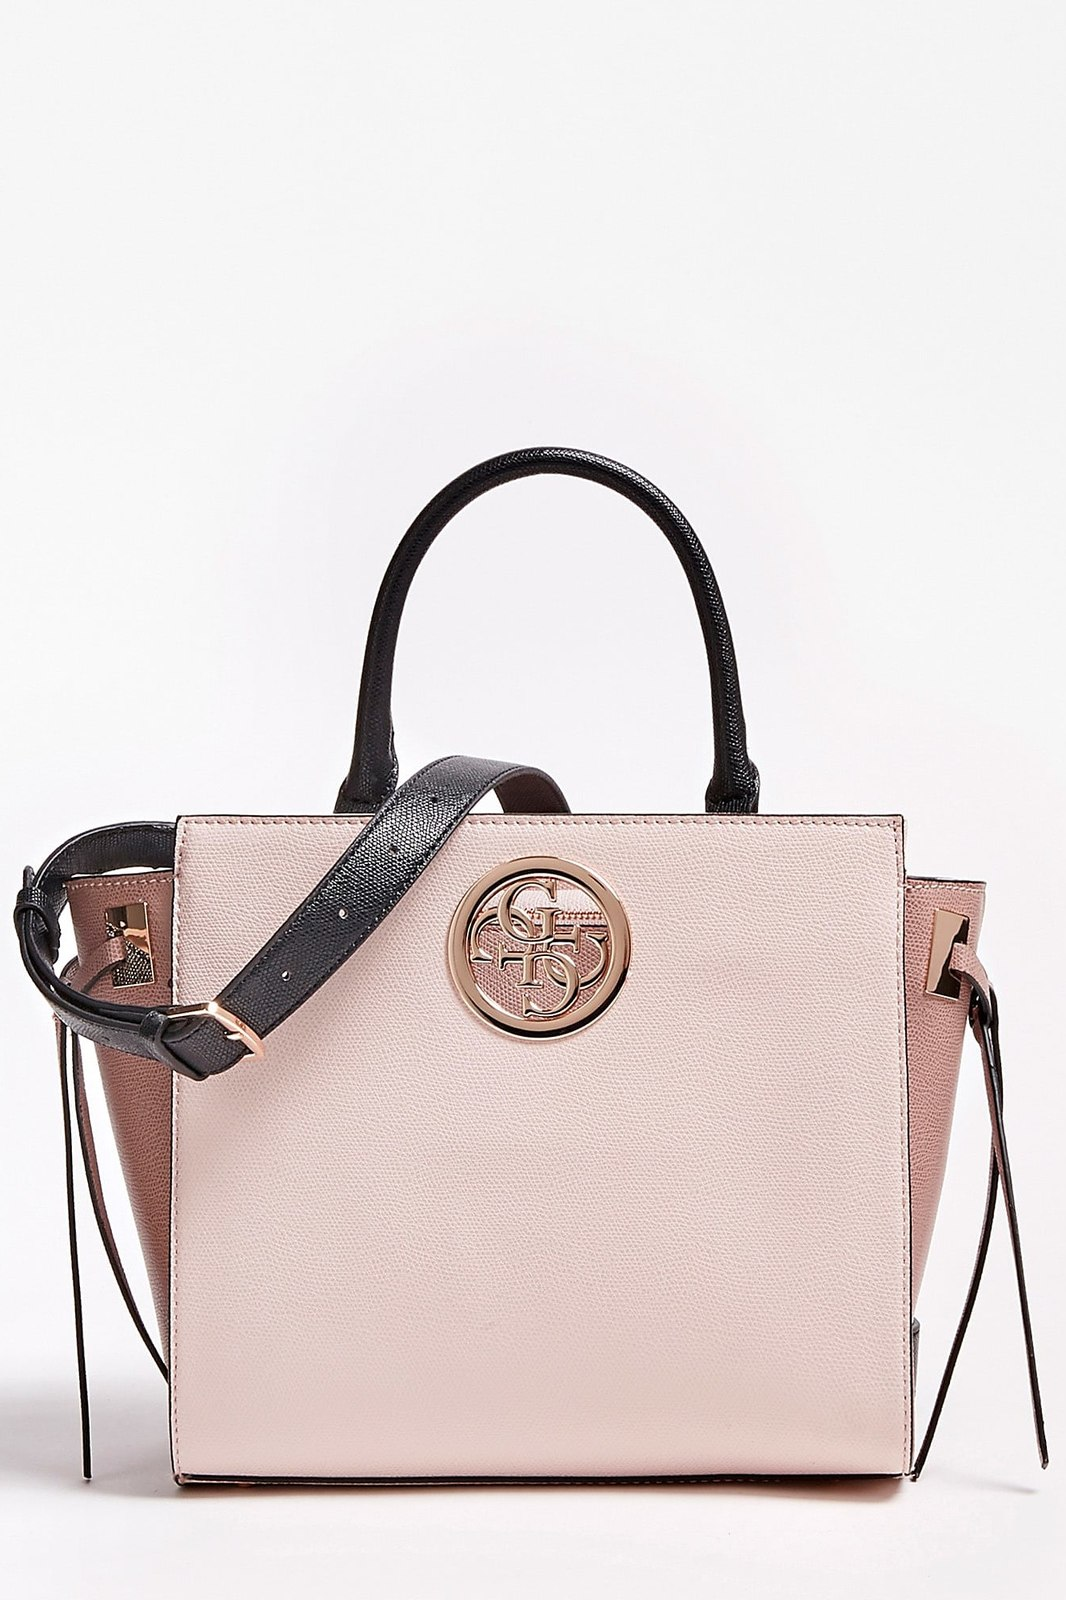 Guess Powder Pink Handbag Open Road Colourblock